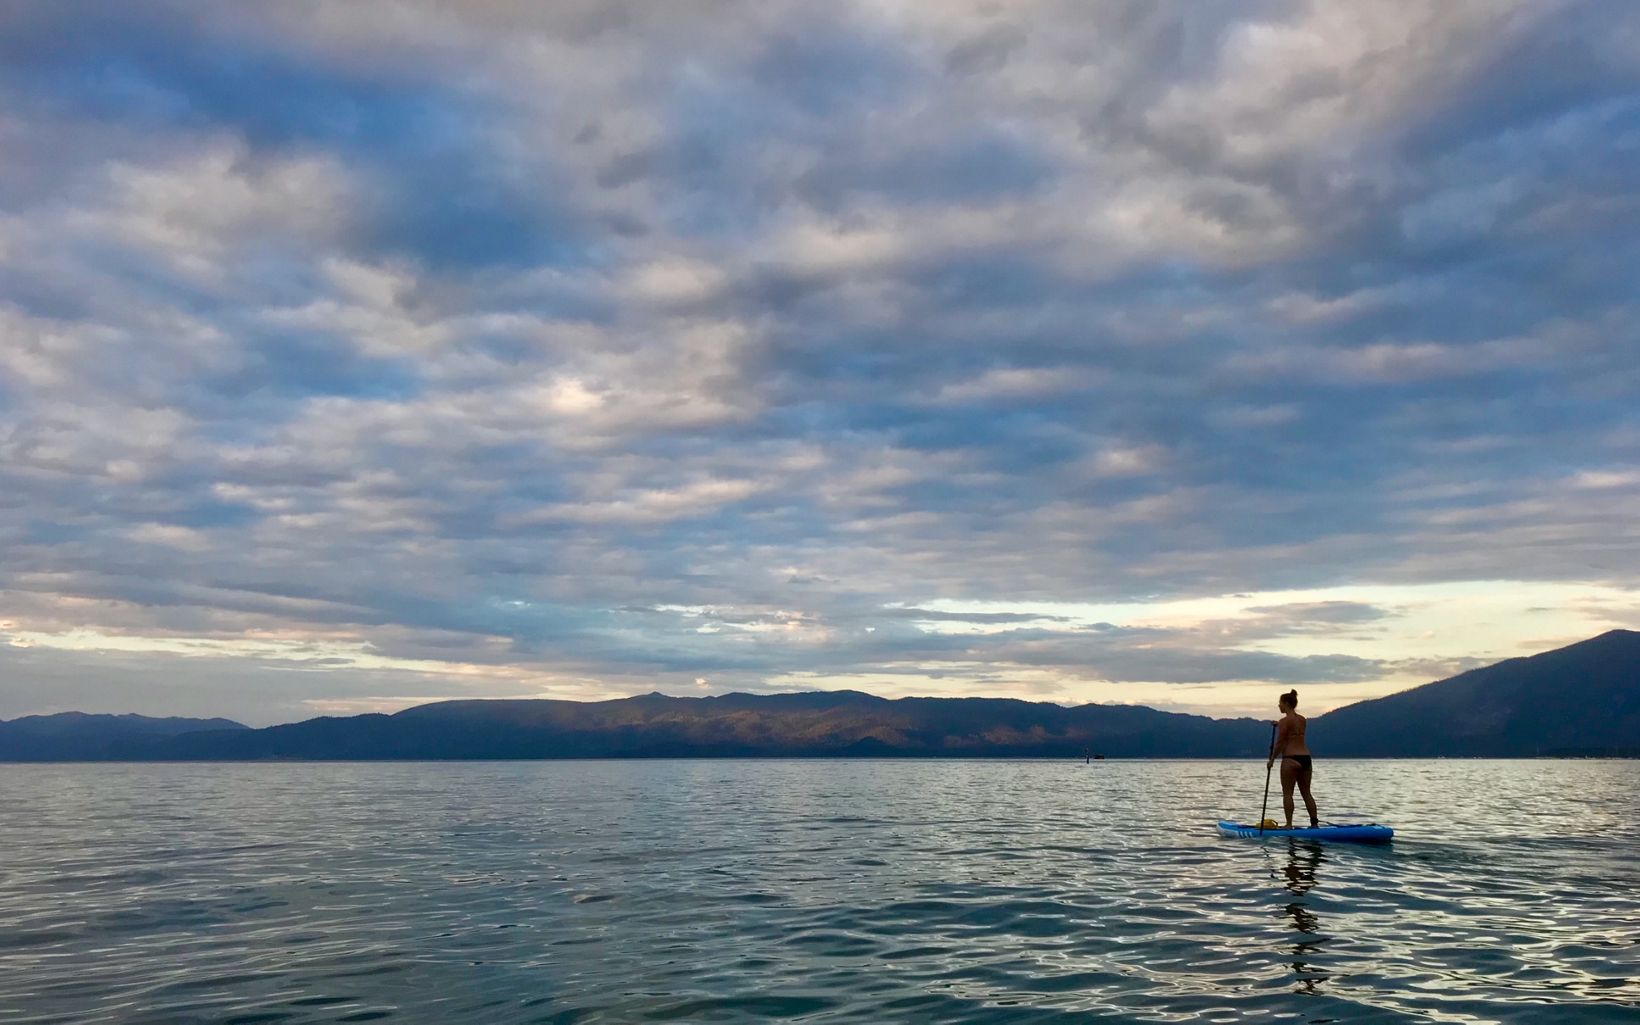 Tahoe is one of my favorite places to Paddle Board. You can launch from basically anywhere along the shore, but I usually go to Kiva Beach.